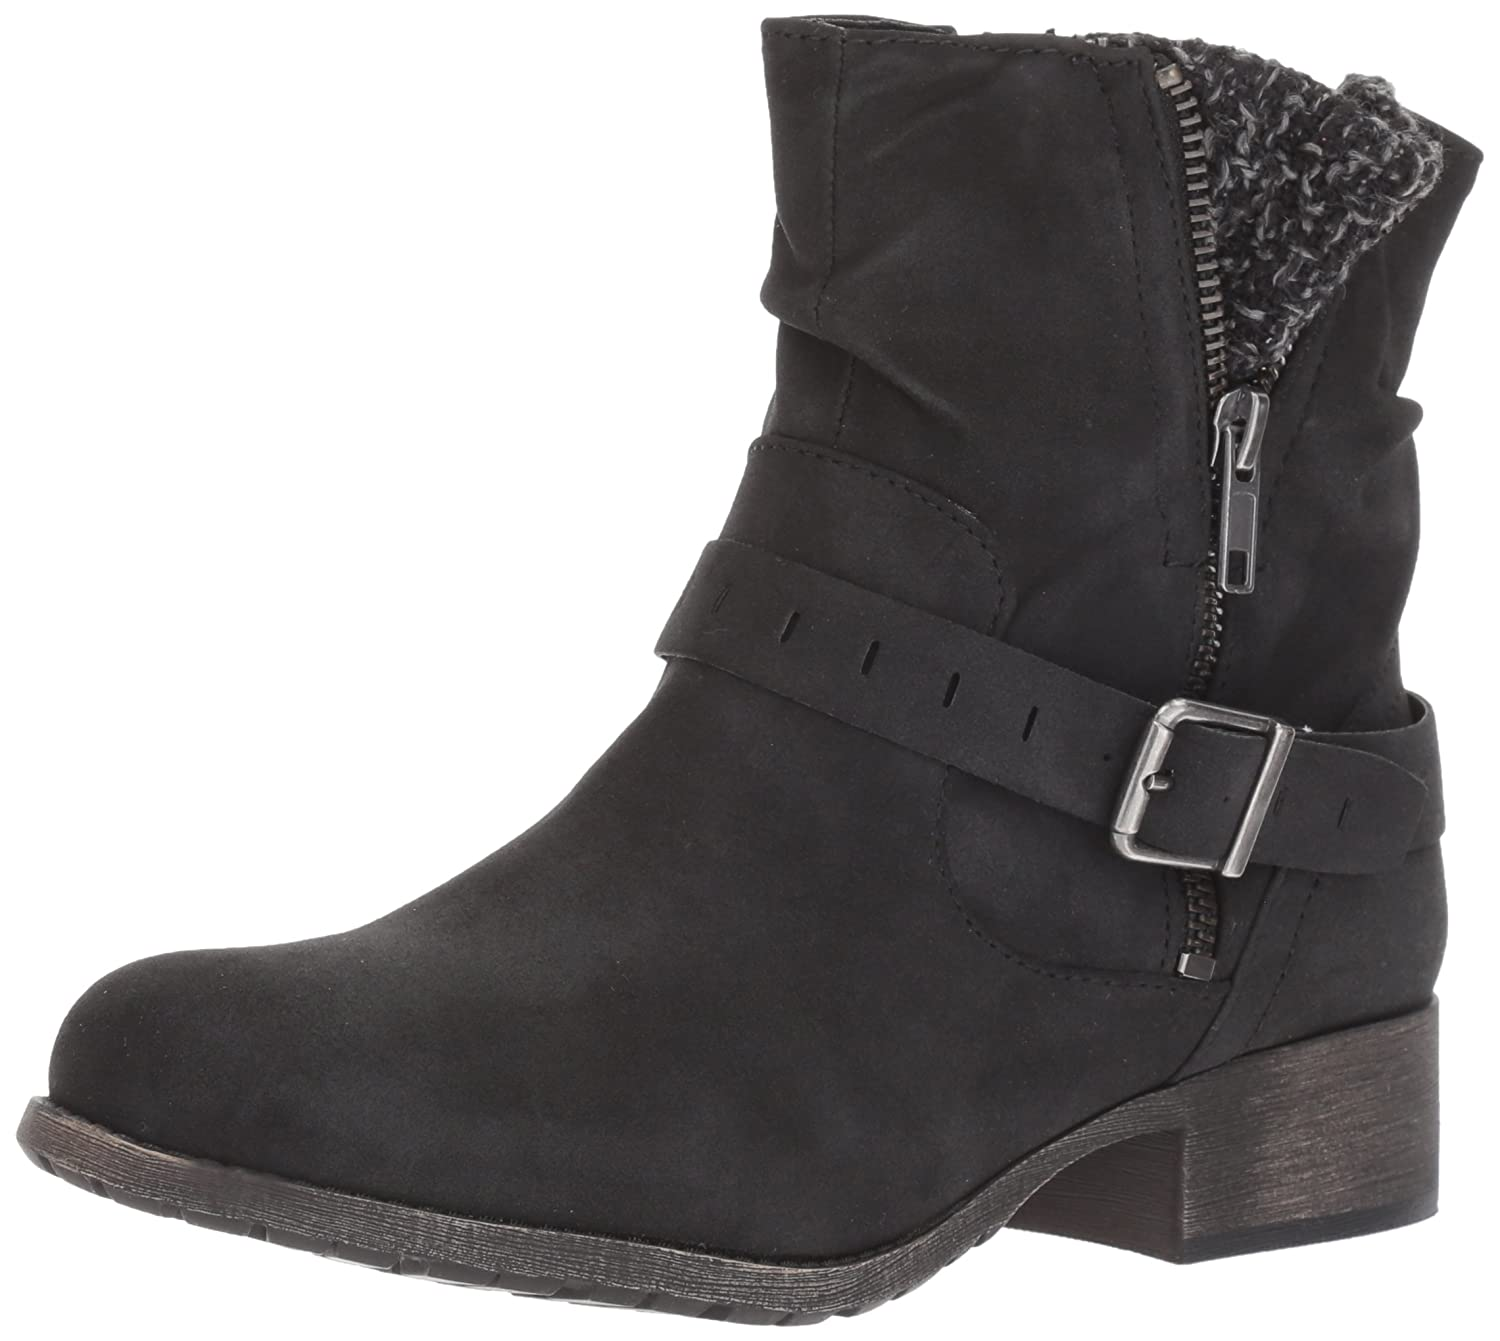 Jellypop Women's Cate Engineer Boot B06WVDX3DJ 8 B(M) US|Black Distress Small